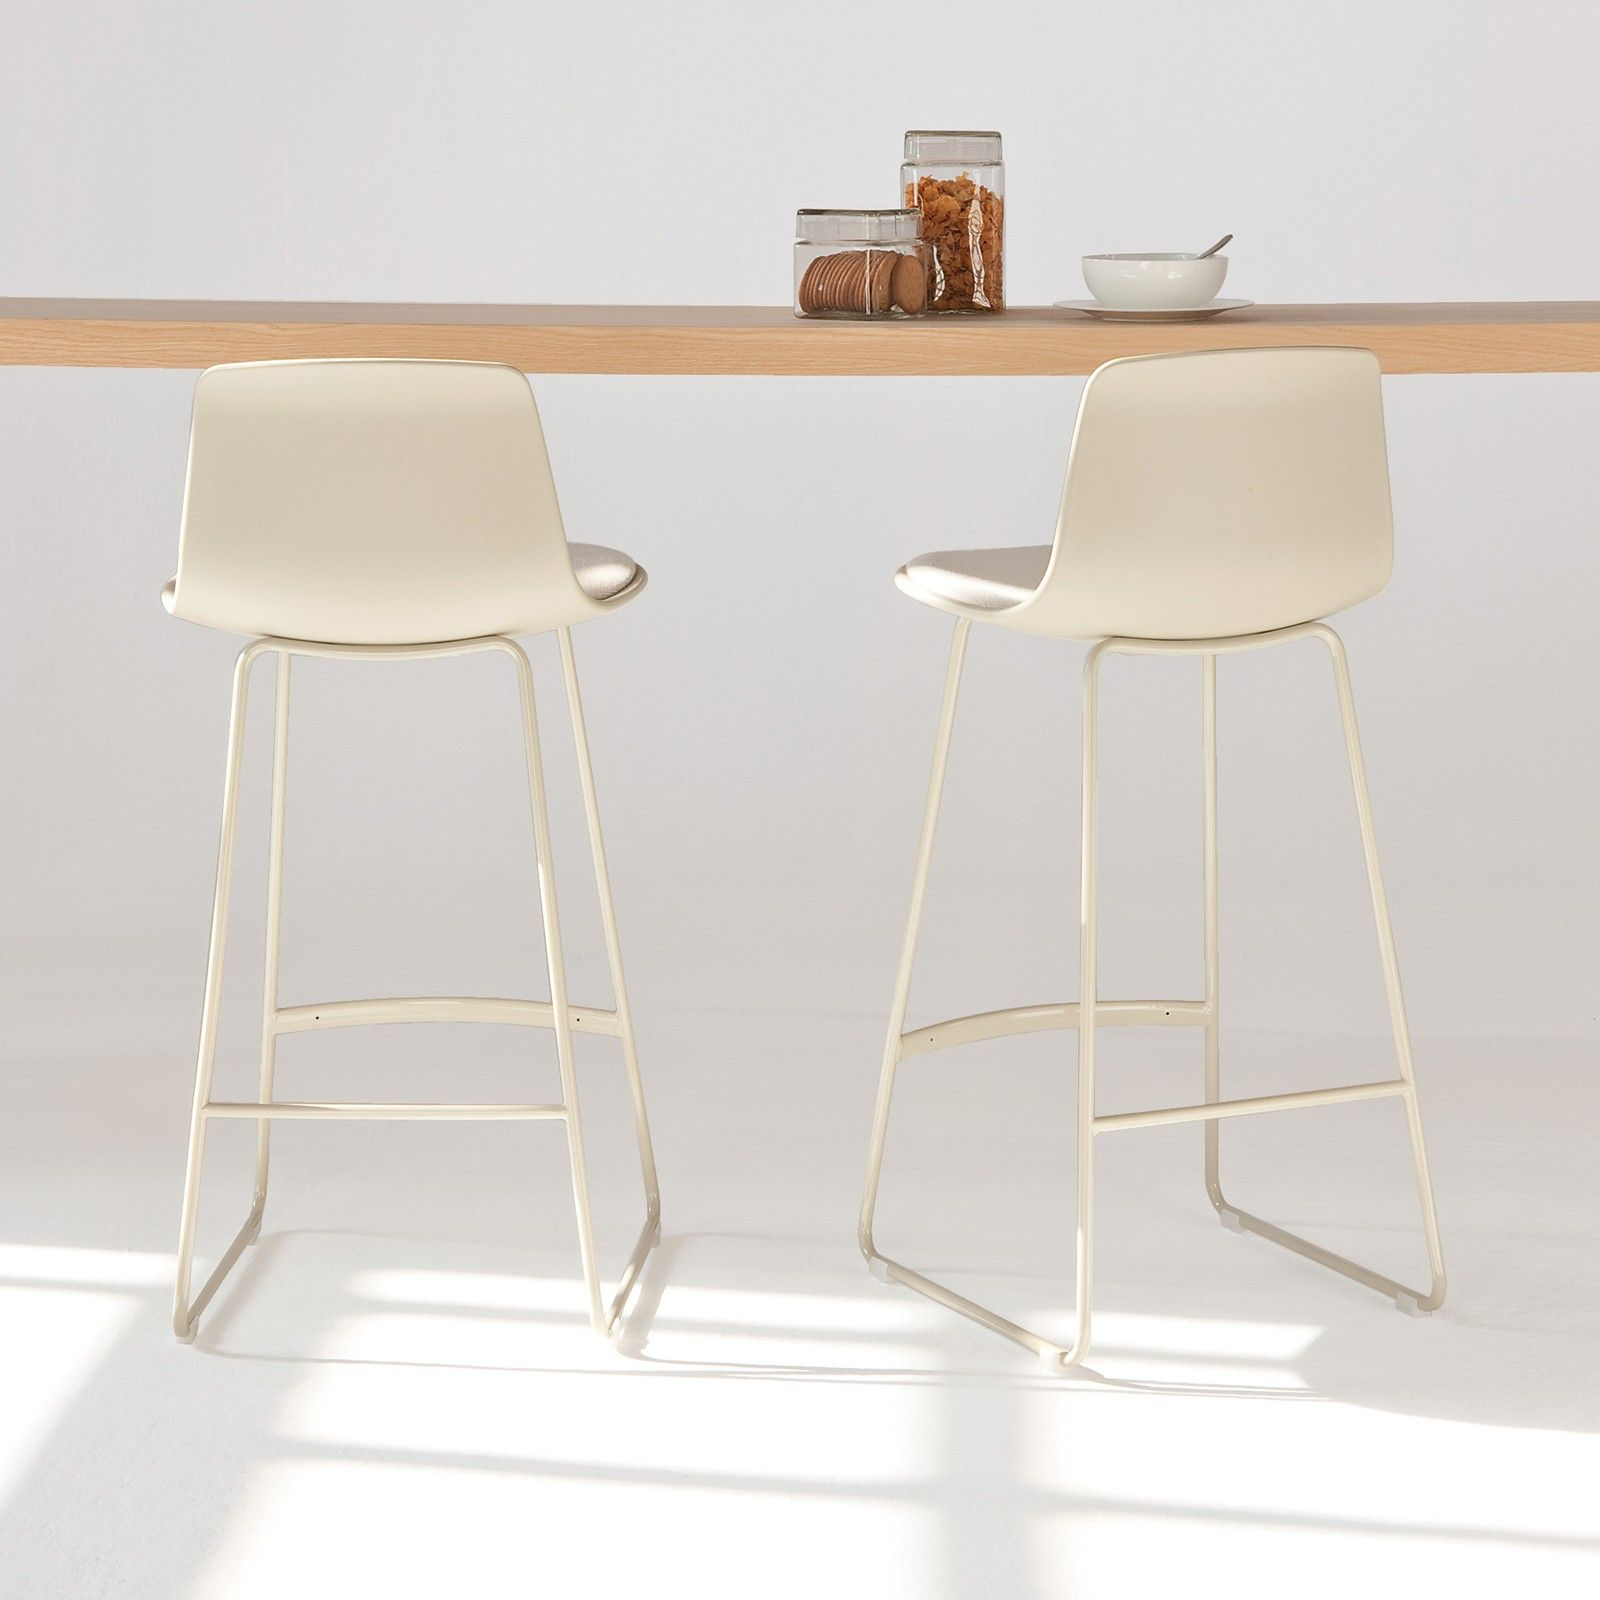 stools sydney furniture lottus ke zu furniture residential and contract